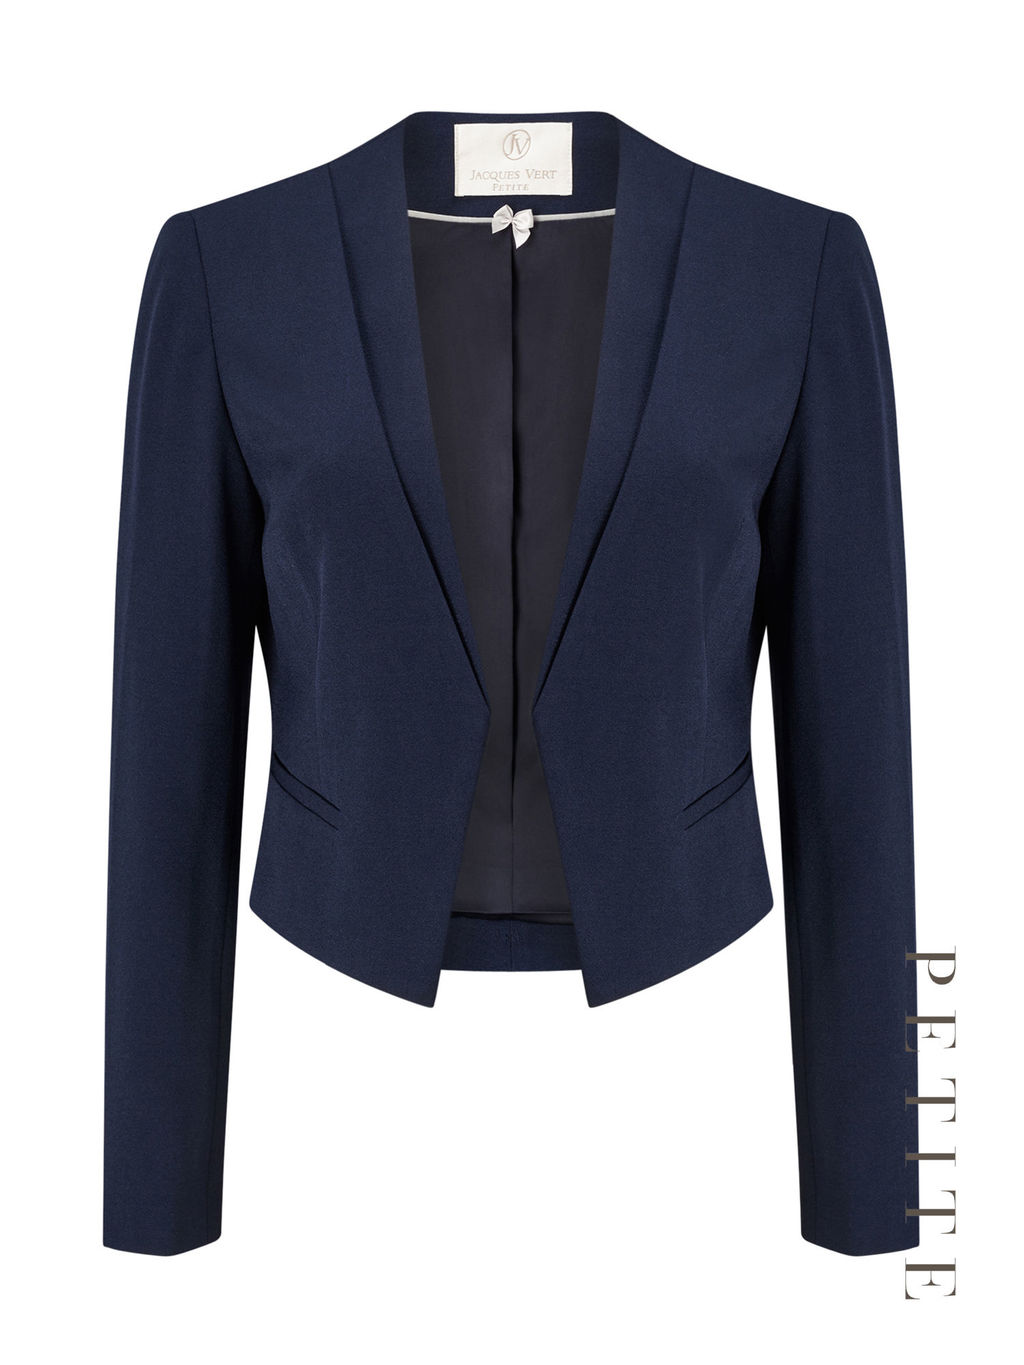 Petite Edge To Edge Jacket - pattern: plain; style: single breasted blazer; collar: standard lapel/rever collar; predominant colour: navy; occasions: work; length: standard; fit: tailored/fitted; fibres: polyester/polyamide - stretch; sleeve length: long sleeve; sleeve style: standard; collar break: low/open; pattern type: fabric; texture group: woven light midweight; wardrobe: investment; season: a/w 2016